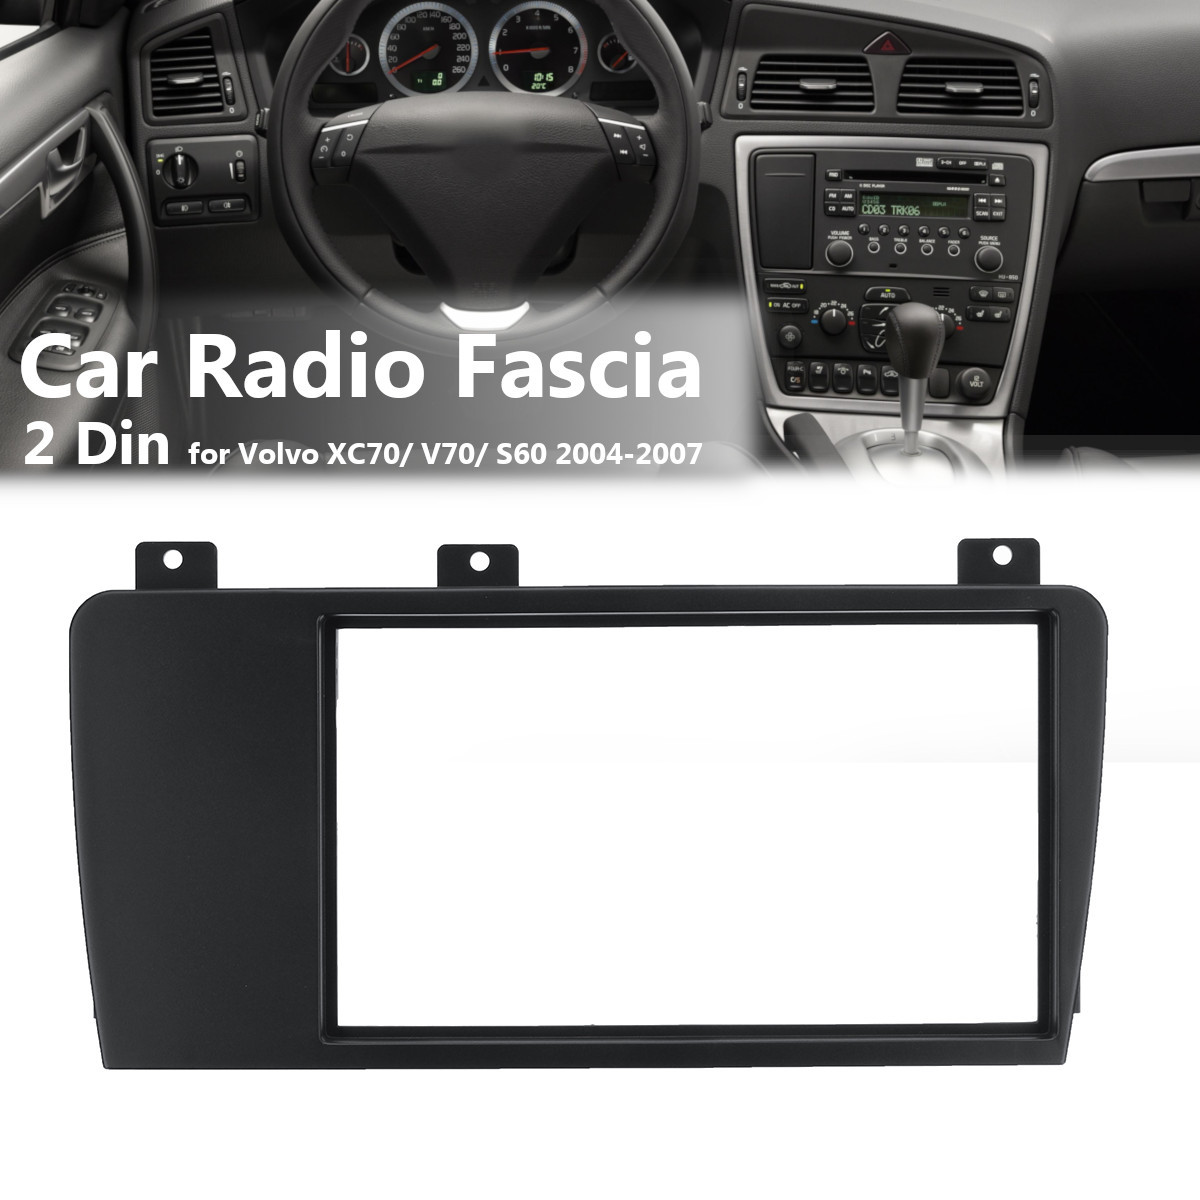 2 Din Car Stereo Radio Fascia Panel Plate Trim Frame CD Dashboard Panel Audio Frame for Volvo XC70/ V70/ S60 2004-2007 image